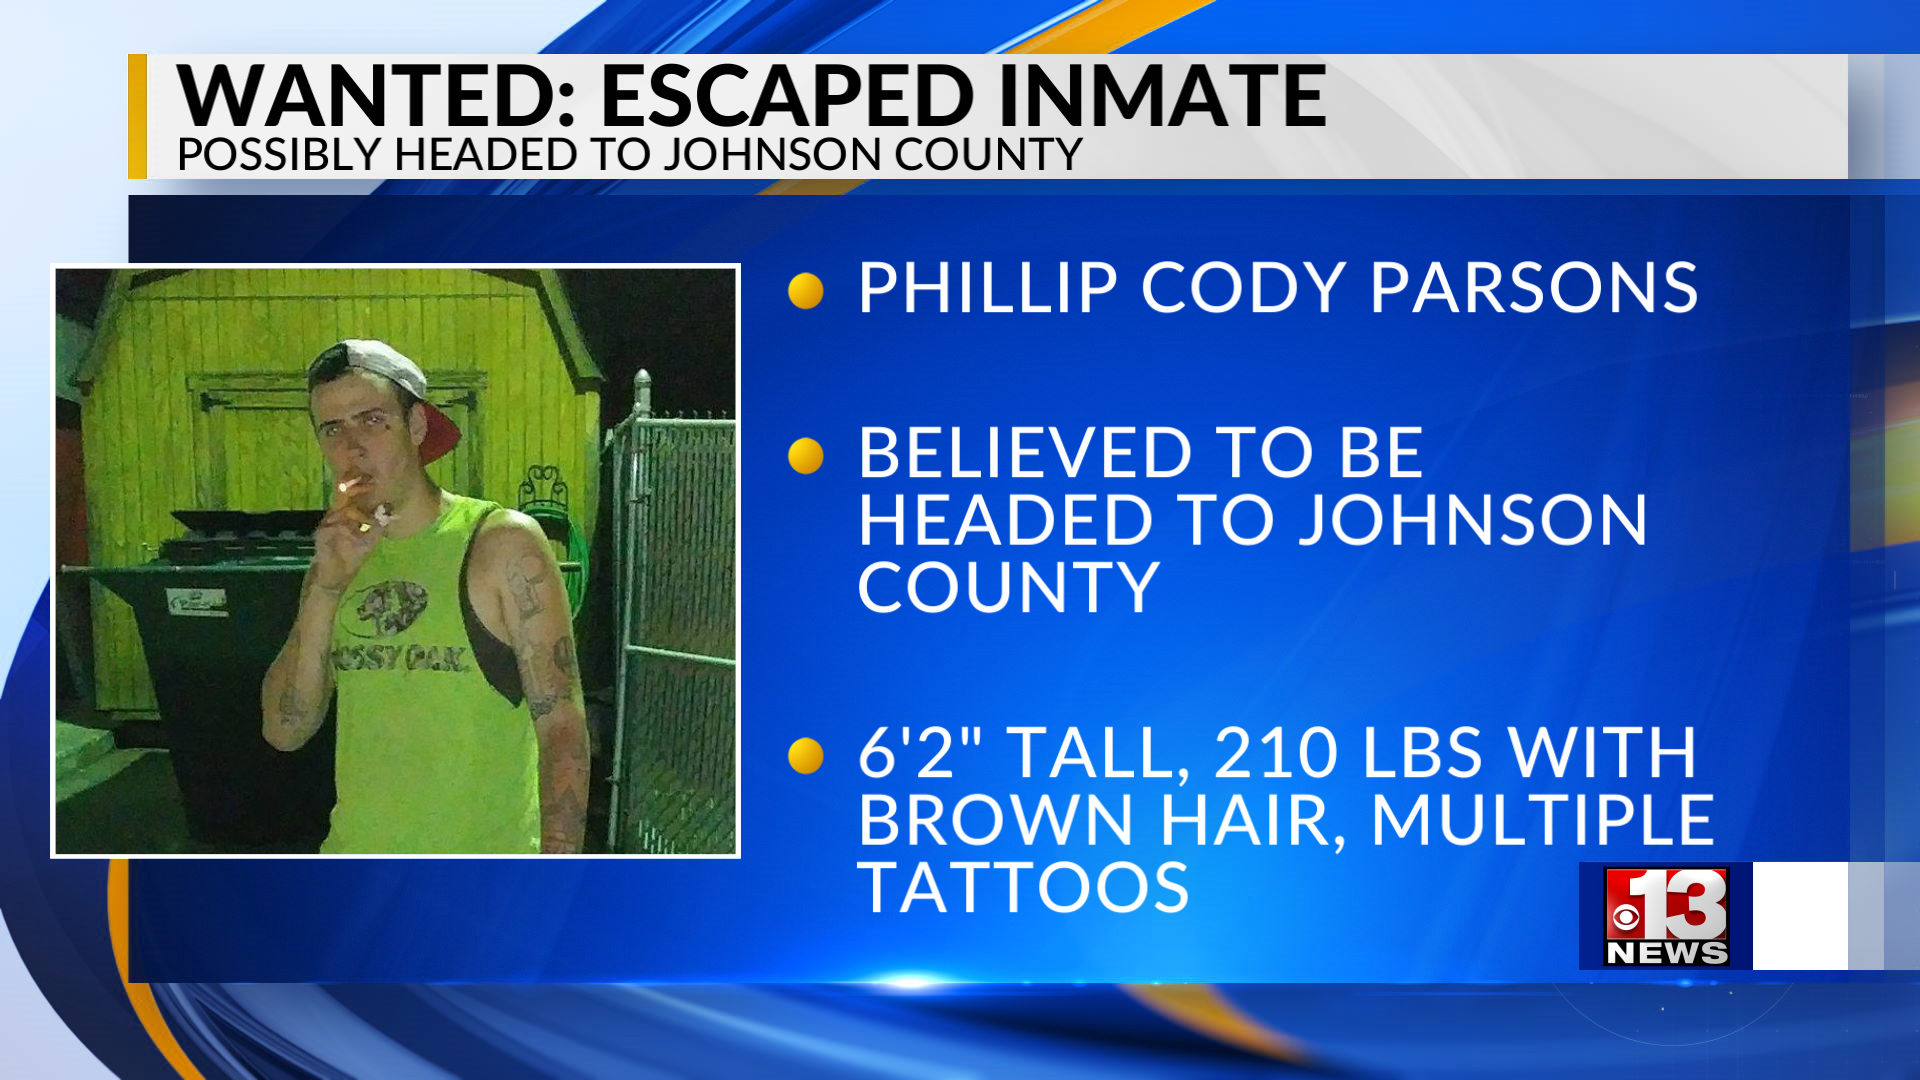 Deputies search for escaped inmate believed to be headed to